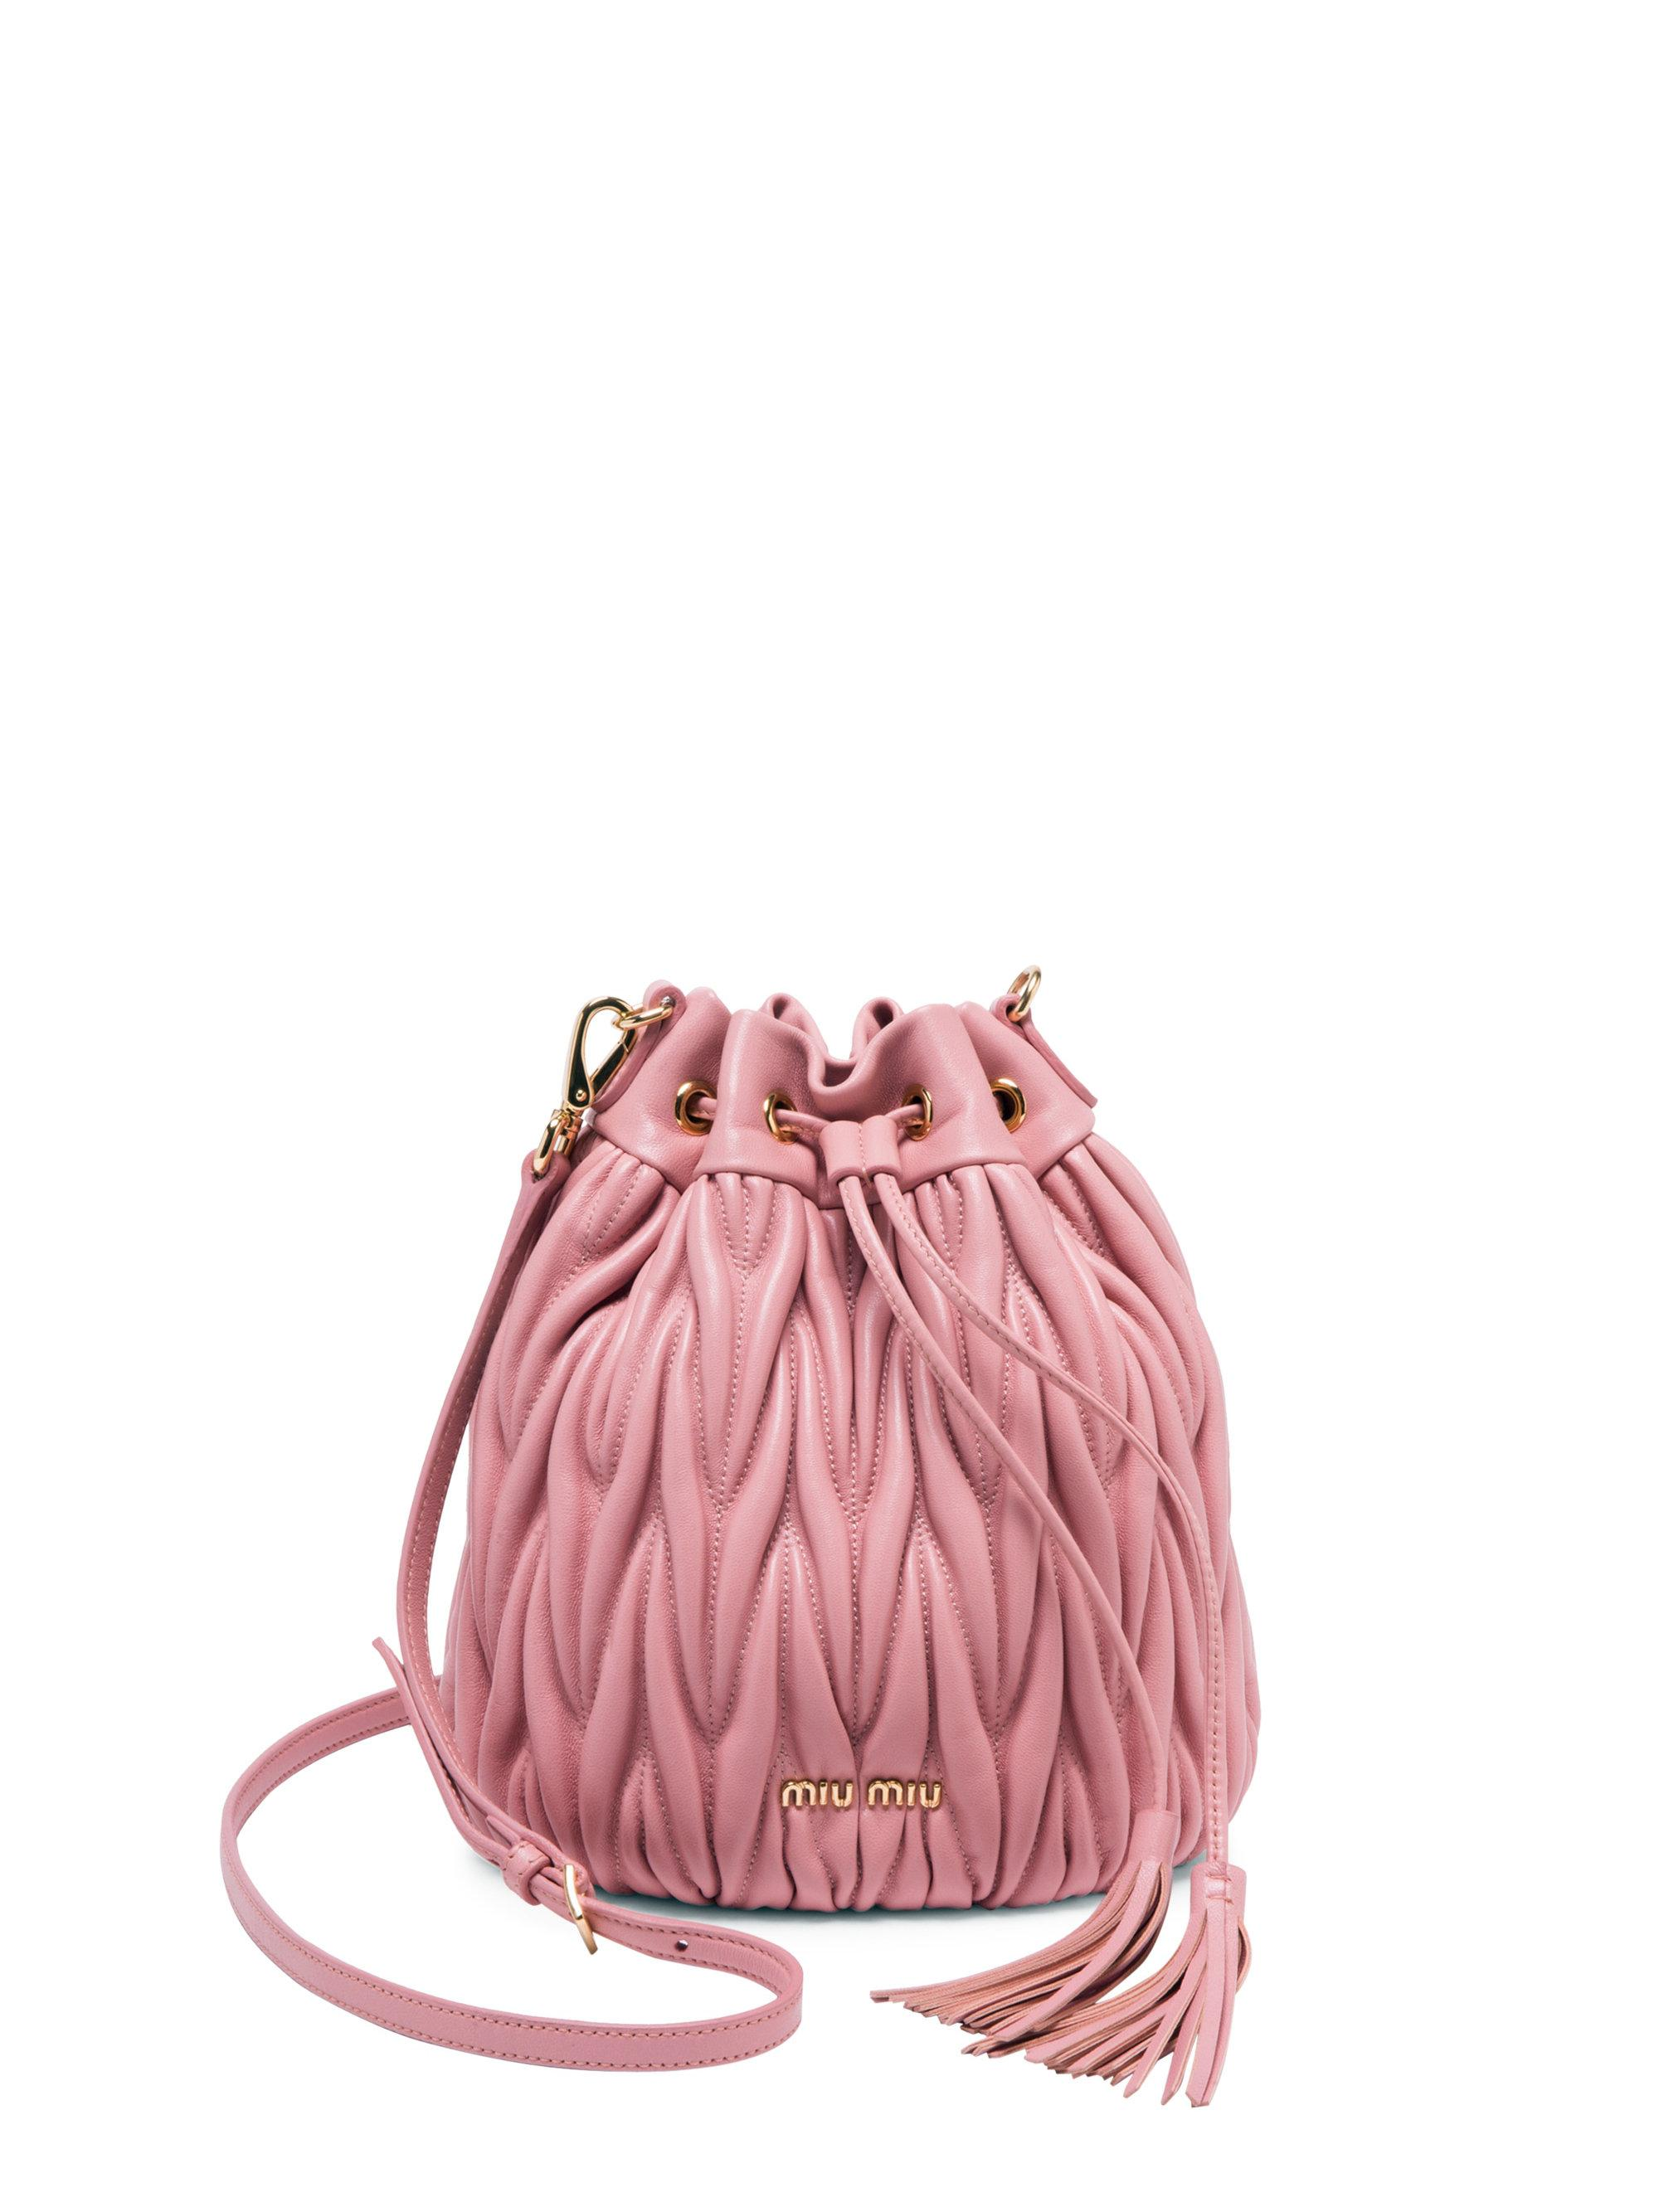 3879509c8a85 Gallery. Previously sold at  Saks Fifth Avenue · Women s Bucket Bags  Women s Leather Bags Women s Miu ...